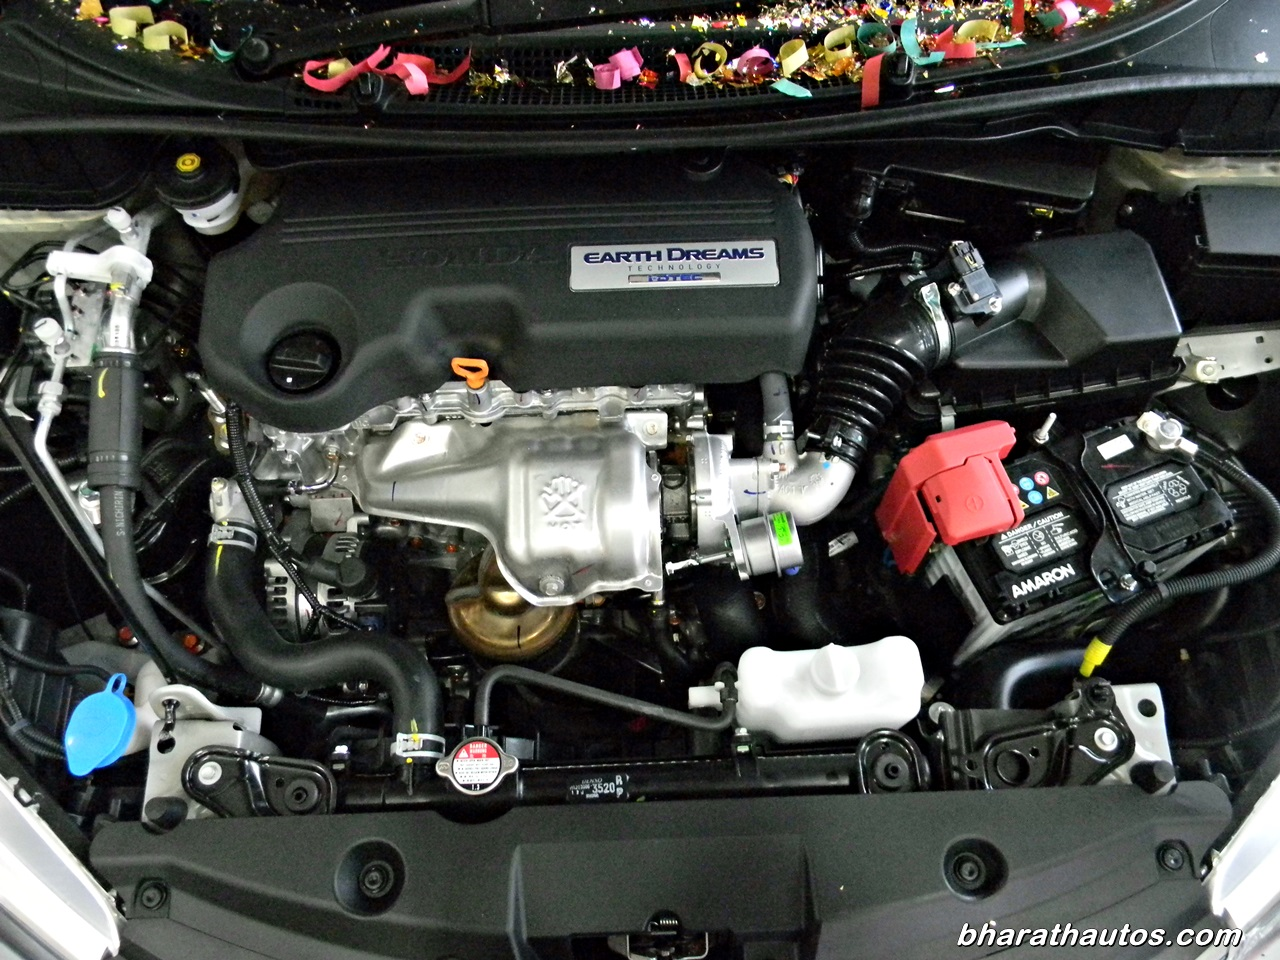 New Honda City 2014 All Variants Specifications And Price In India